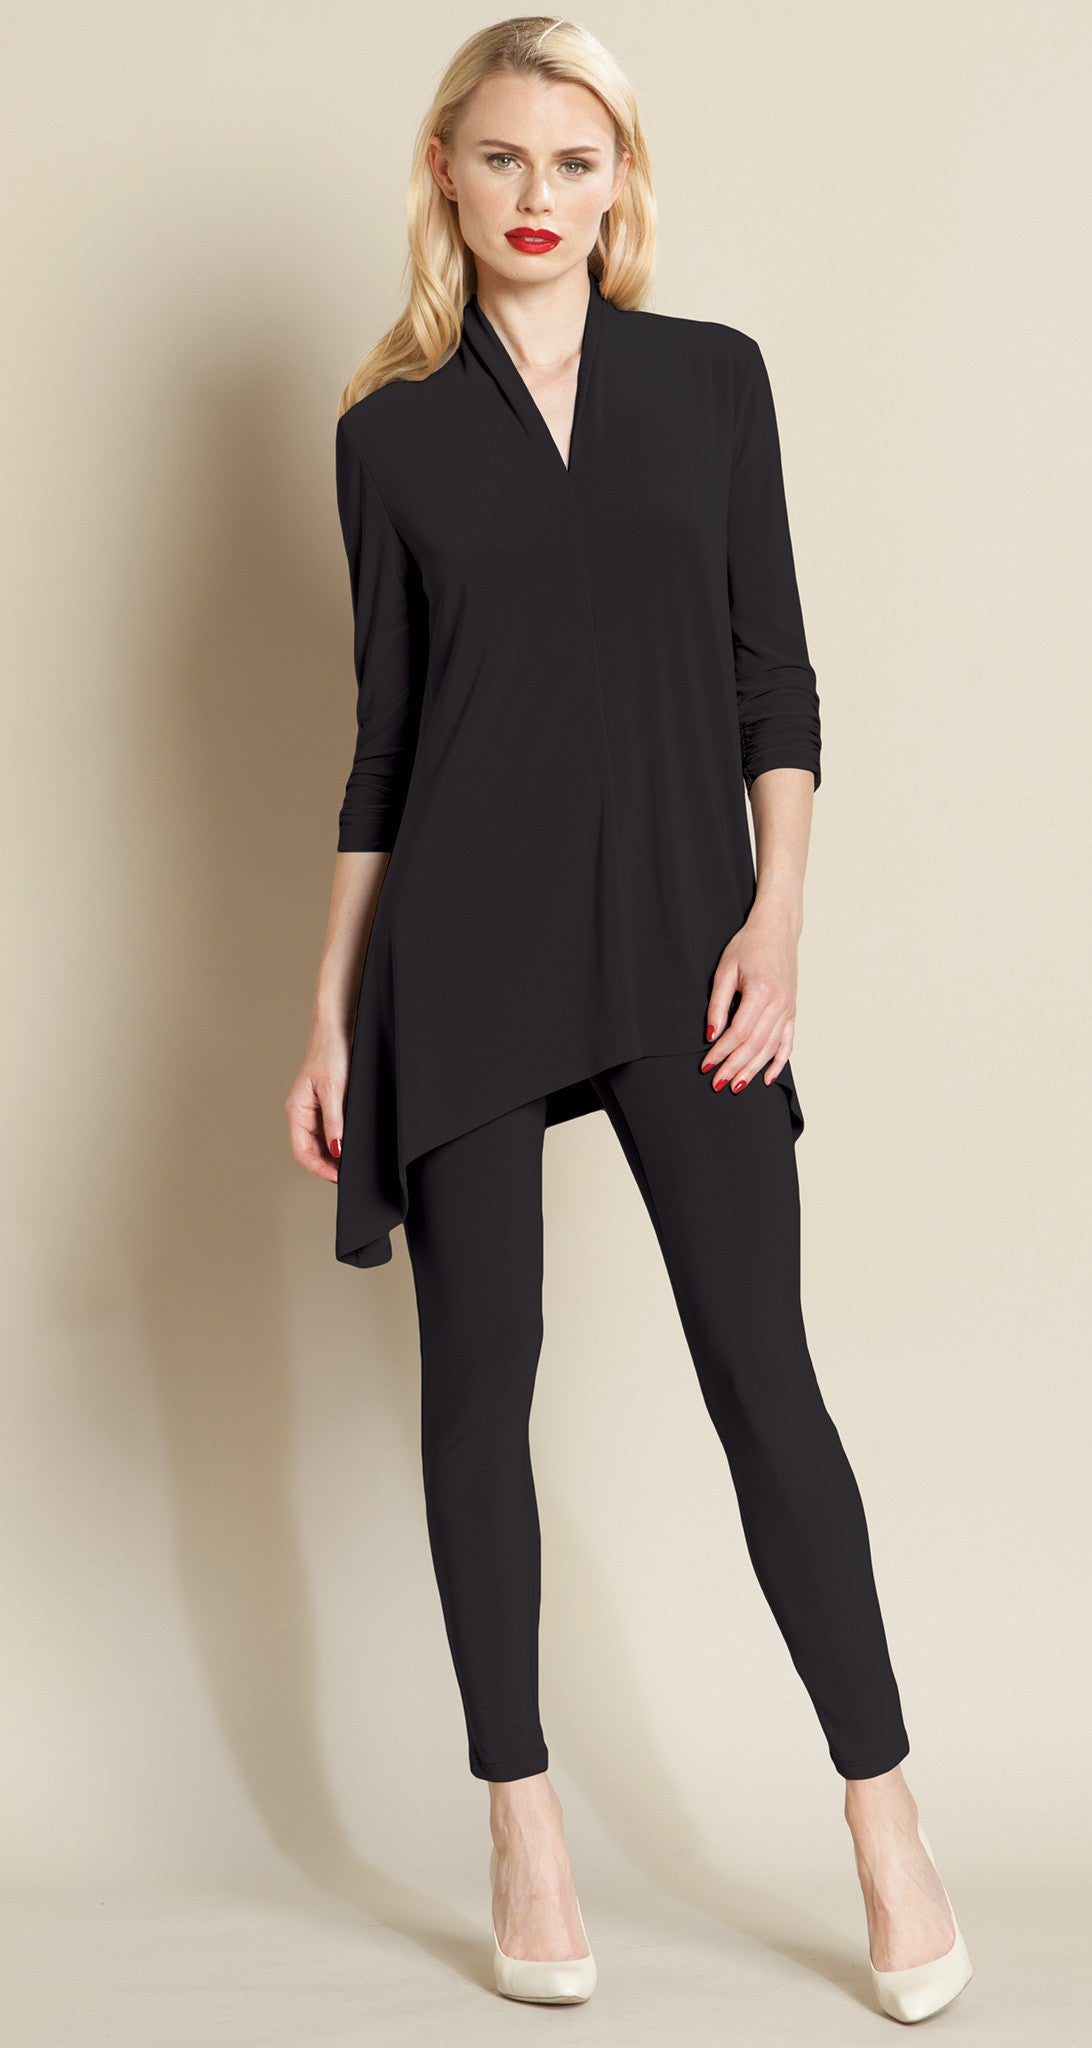 Narrow V-Neck Tunic - As Seen on Today Show!